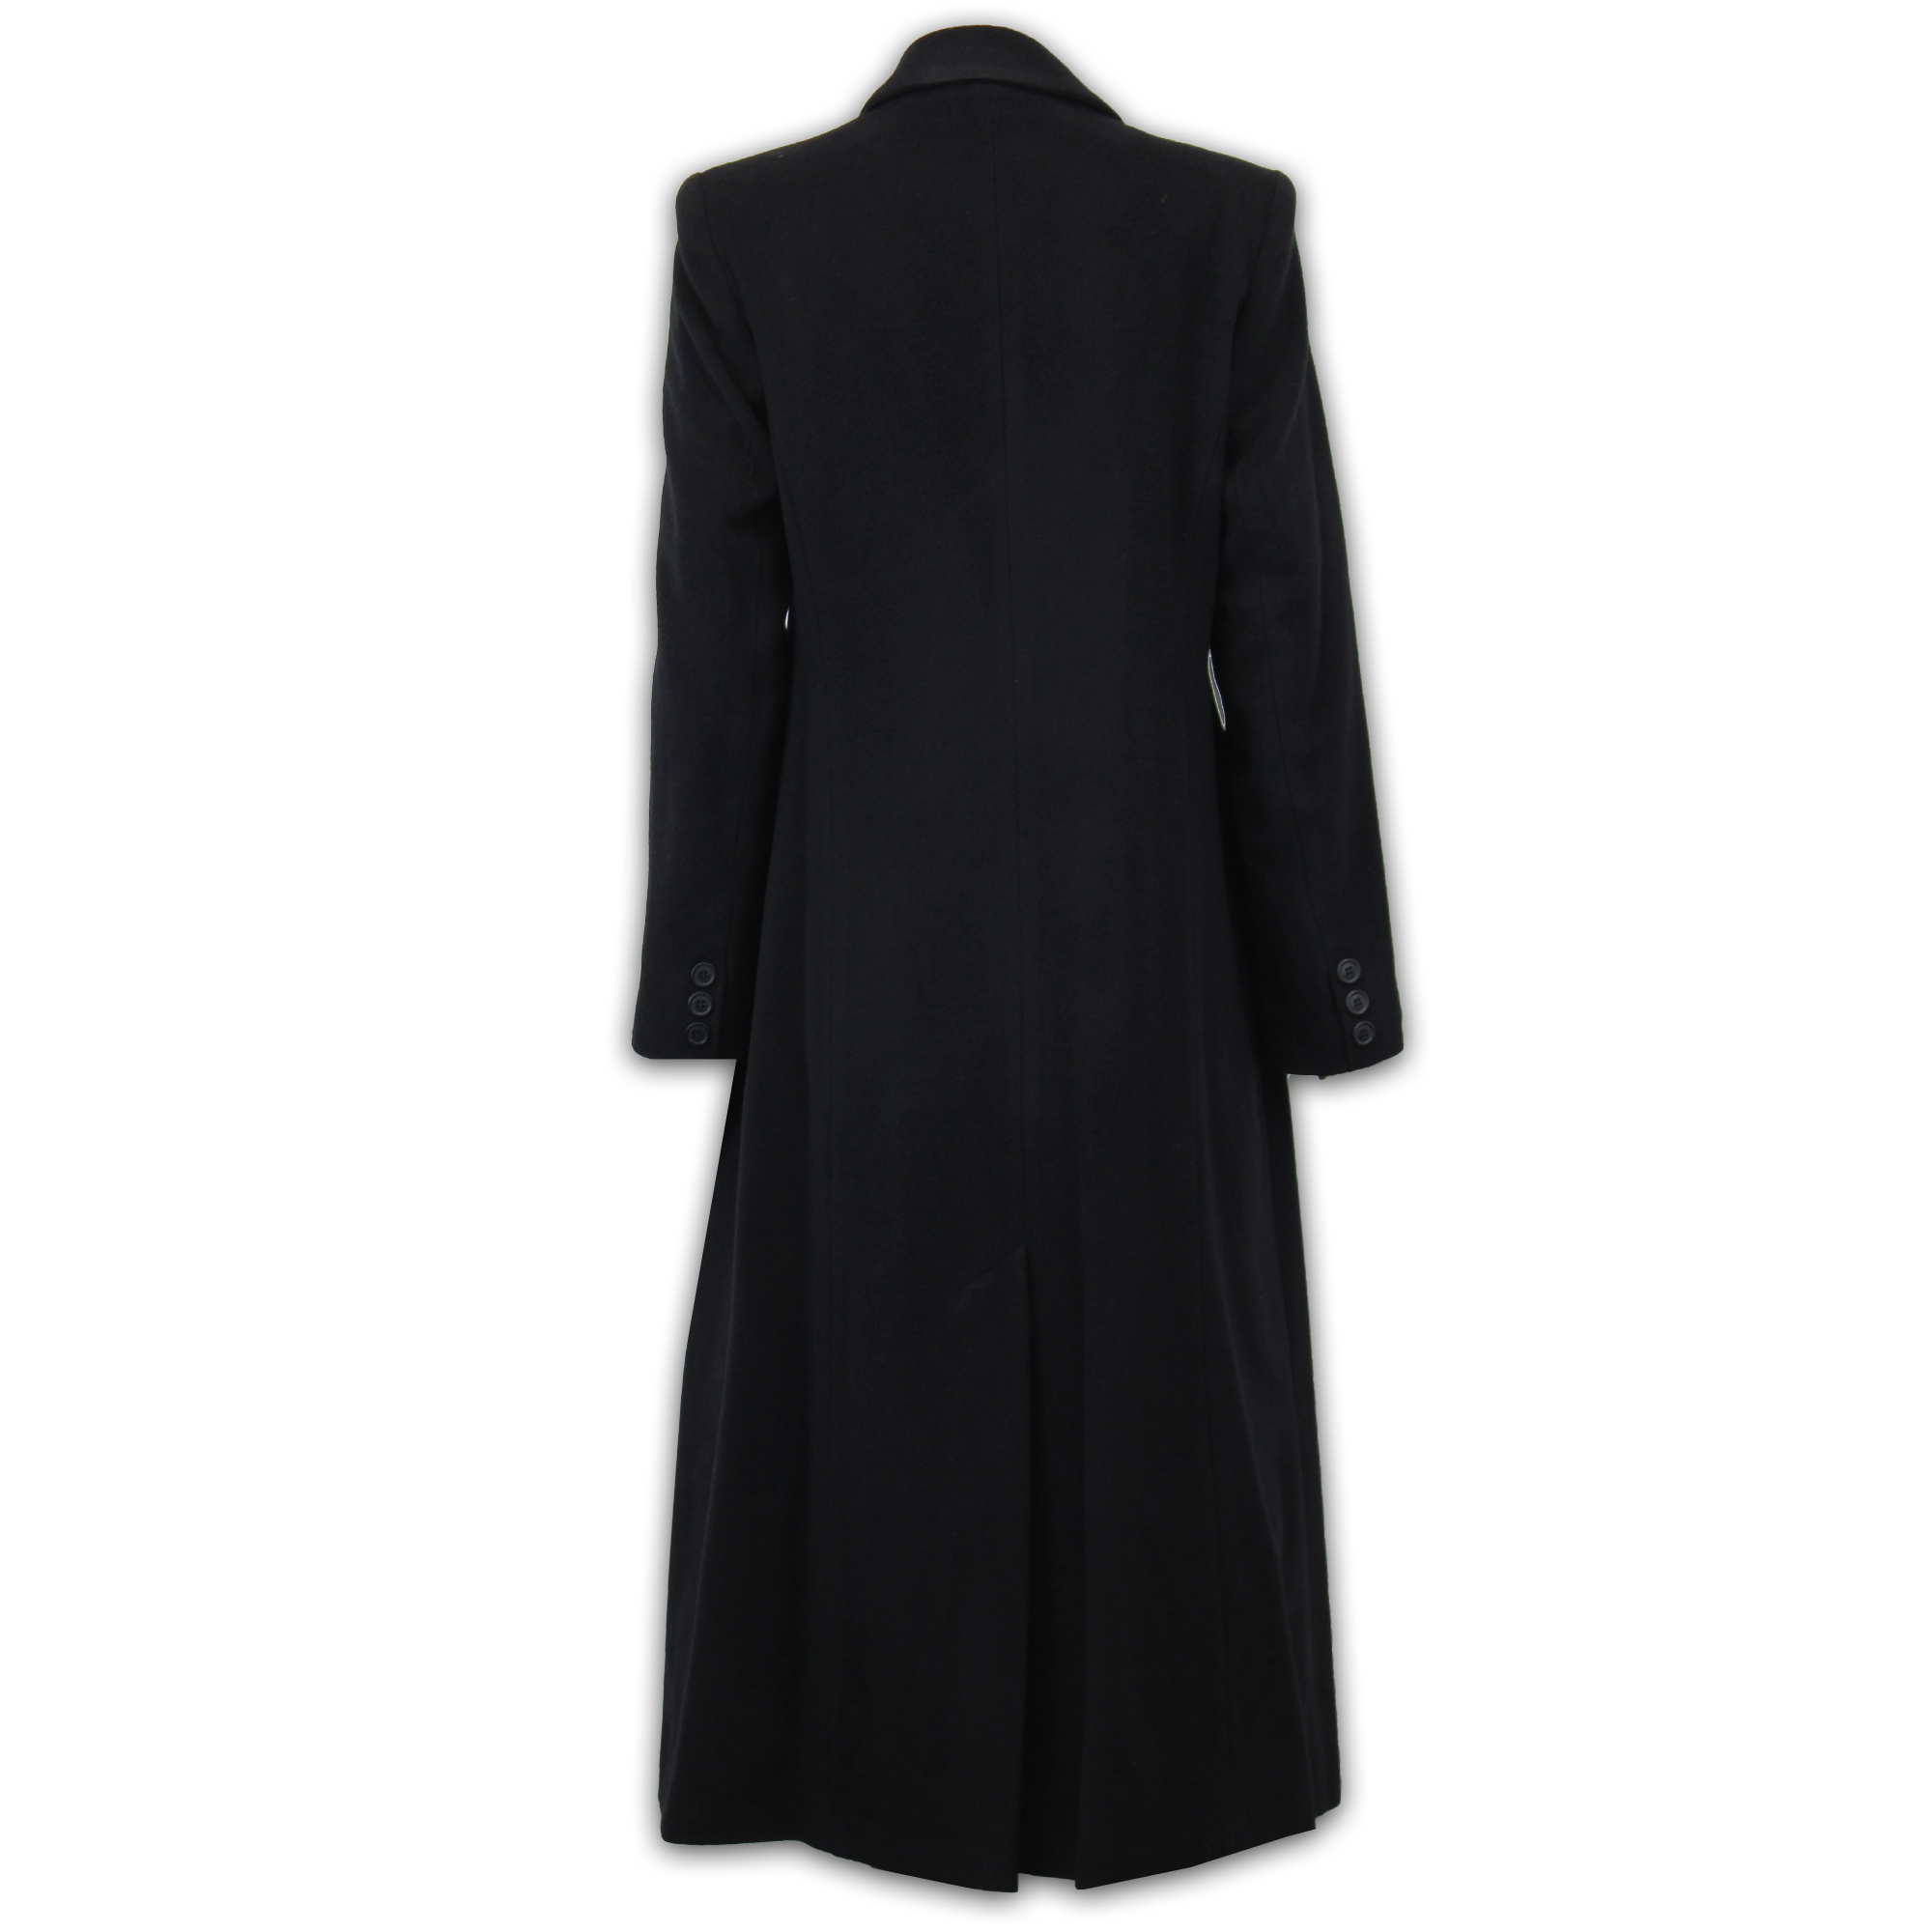 Ladies-Wool-Cashmere-Coat-Women-Jacket-Outerwear-Trench-Overcoat-Winter-Lined thumbnail 3